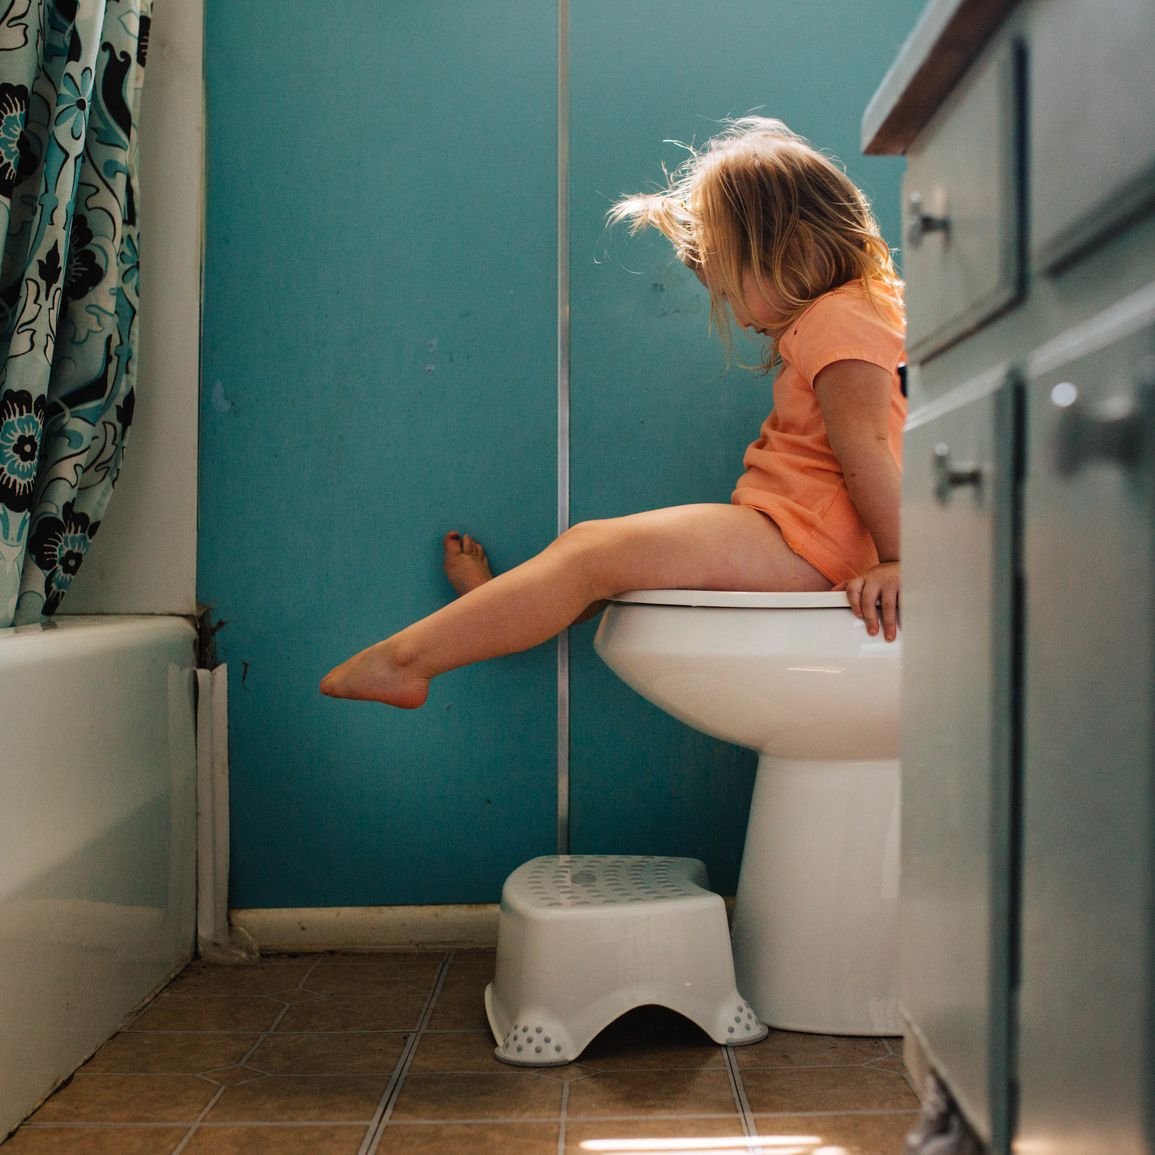 How To Potty Train Your Child In Just 3 Days